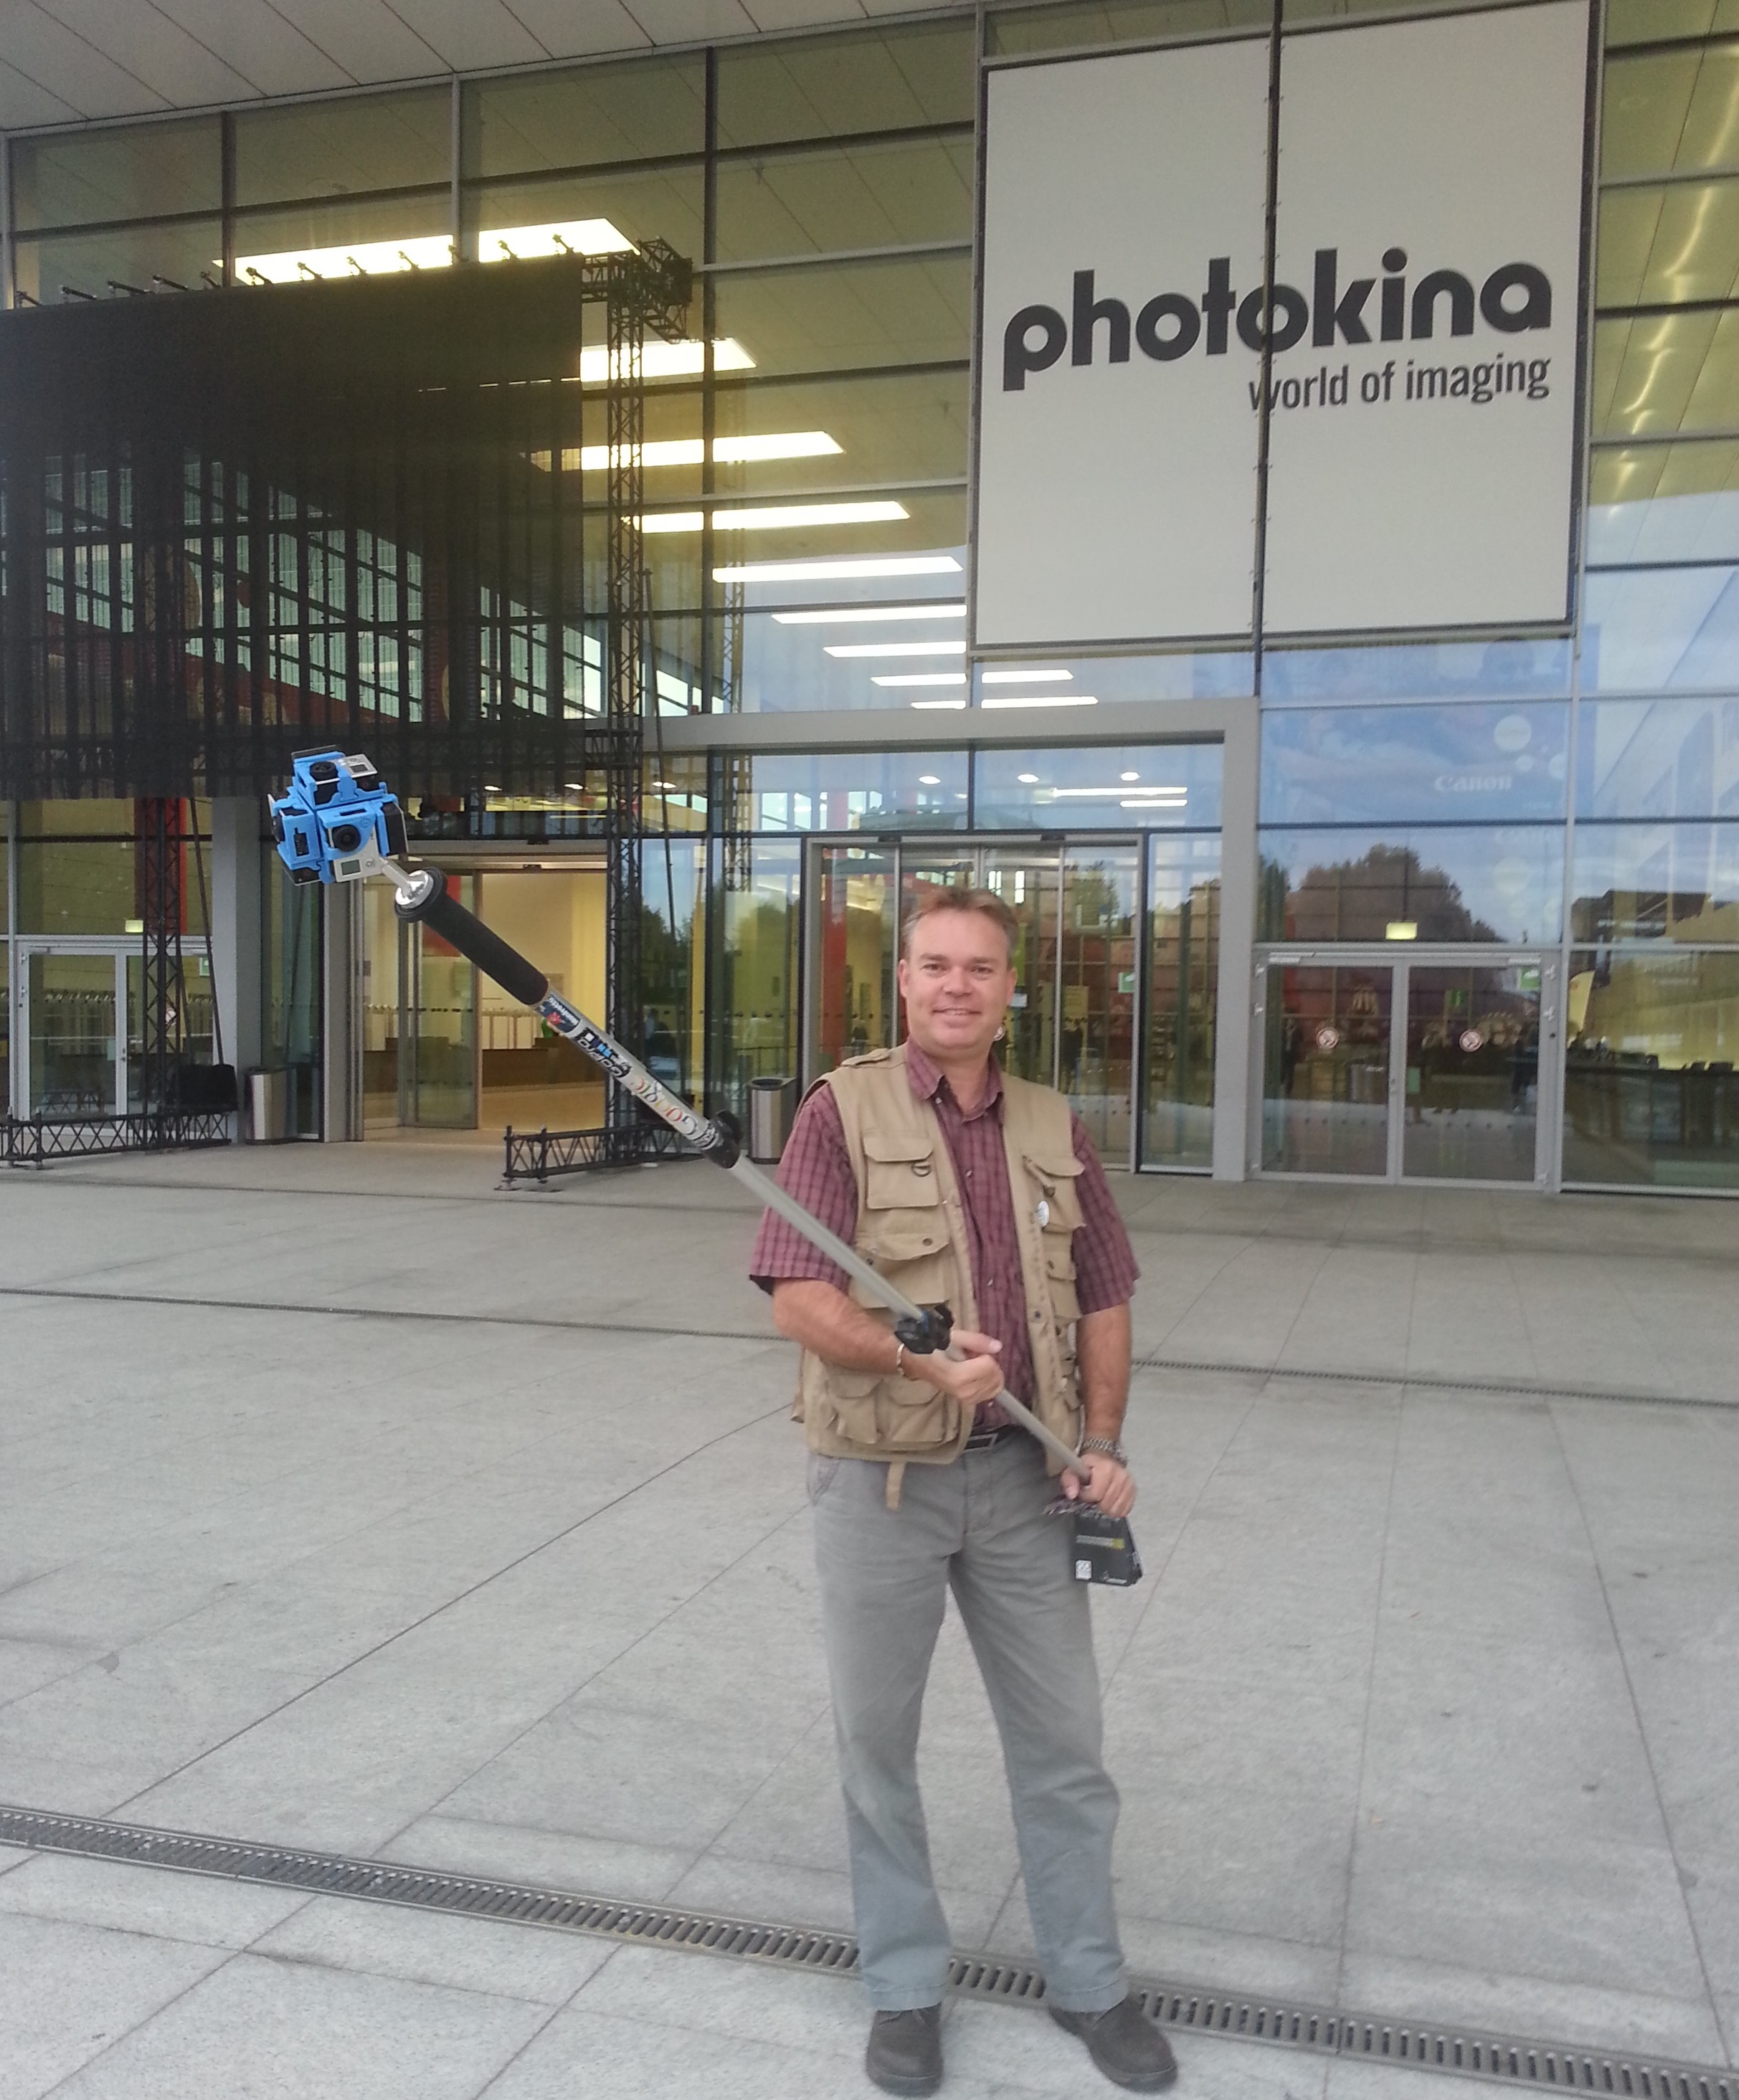 photokina edit